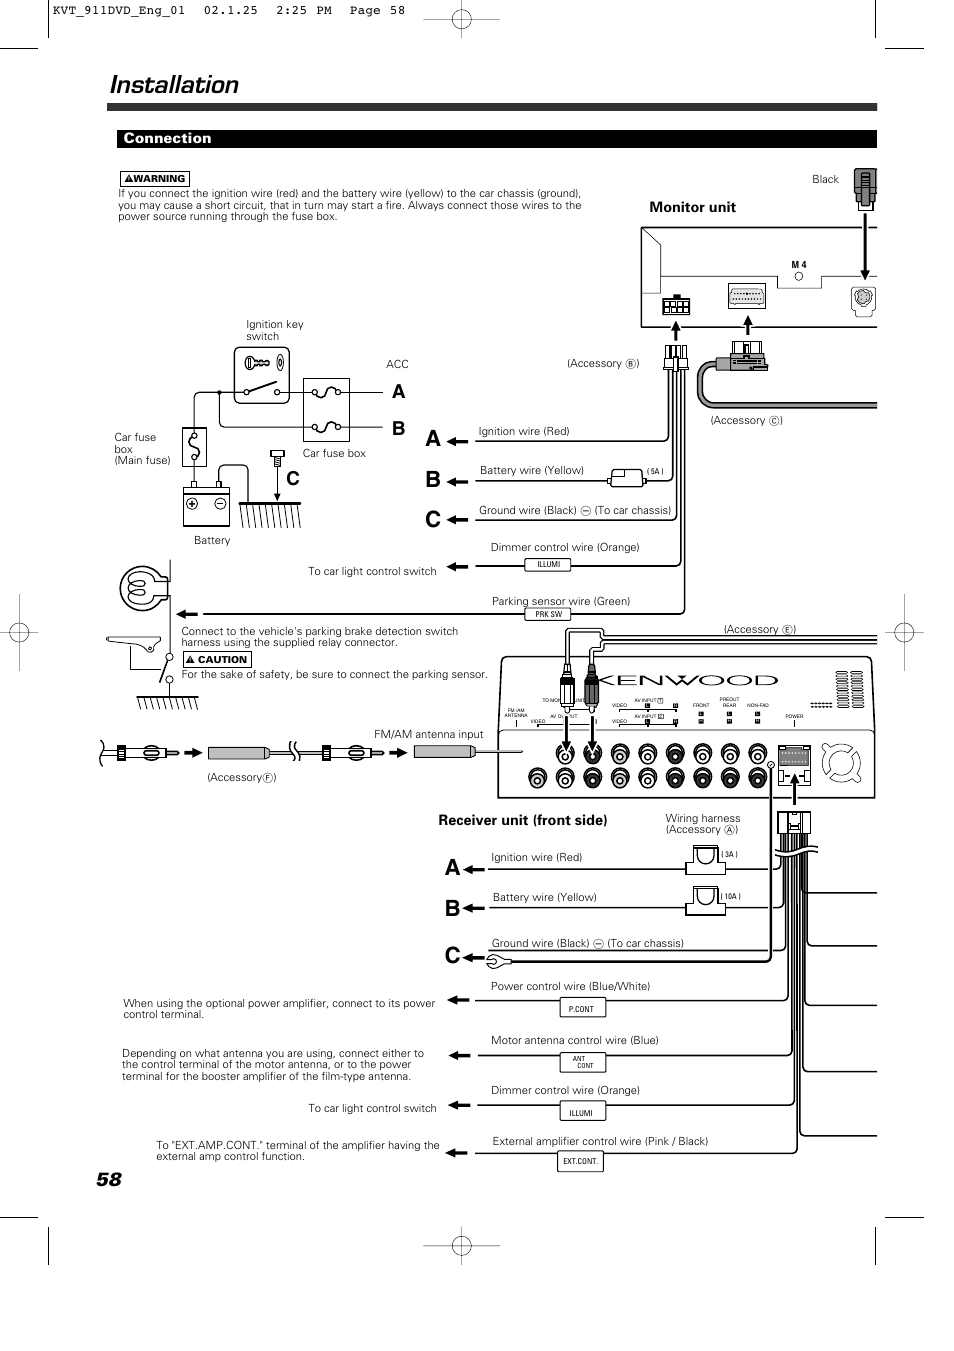 Kenwood Kvt 911dvd Wiring Diagram : 33 Wiring Diagram